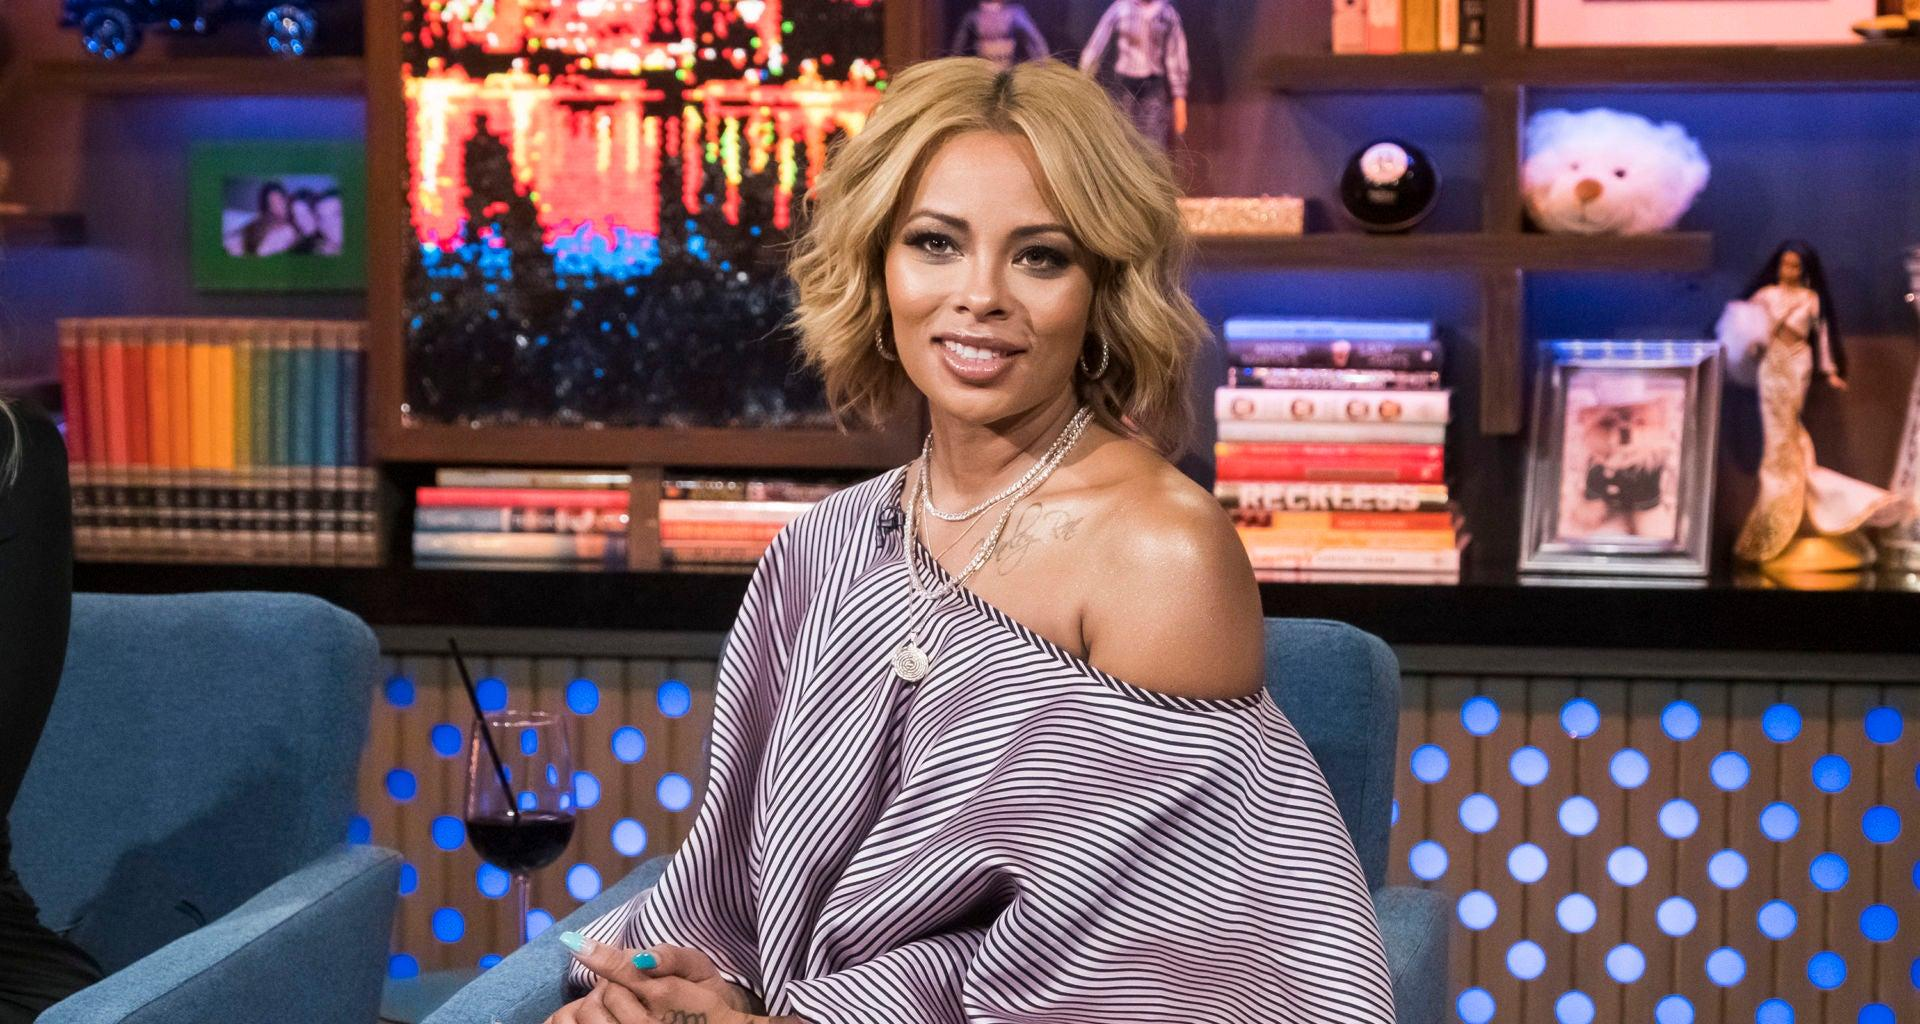 Eva Marcille Addresses Racism - Check Out The Video She Shared